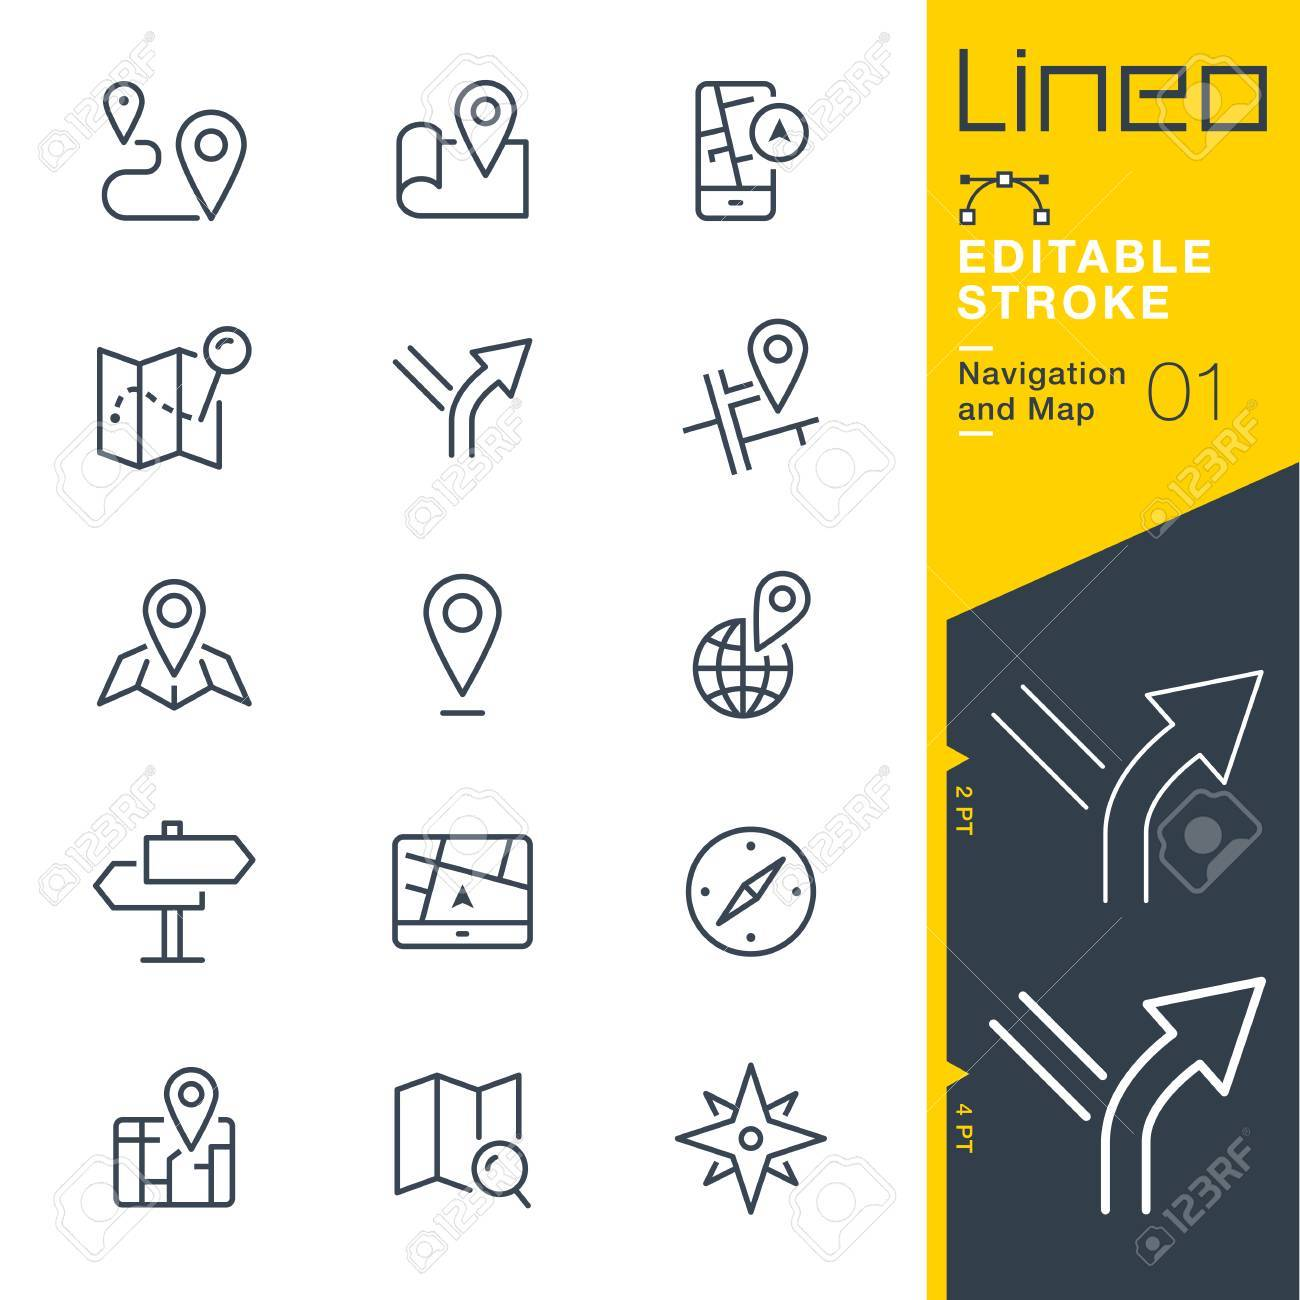 Lineo Editable Stroke - Navigation and Map line icon Vector Icons - Adjust stroke weight - Change to any color - 85190490